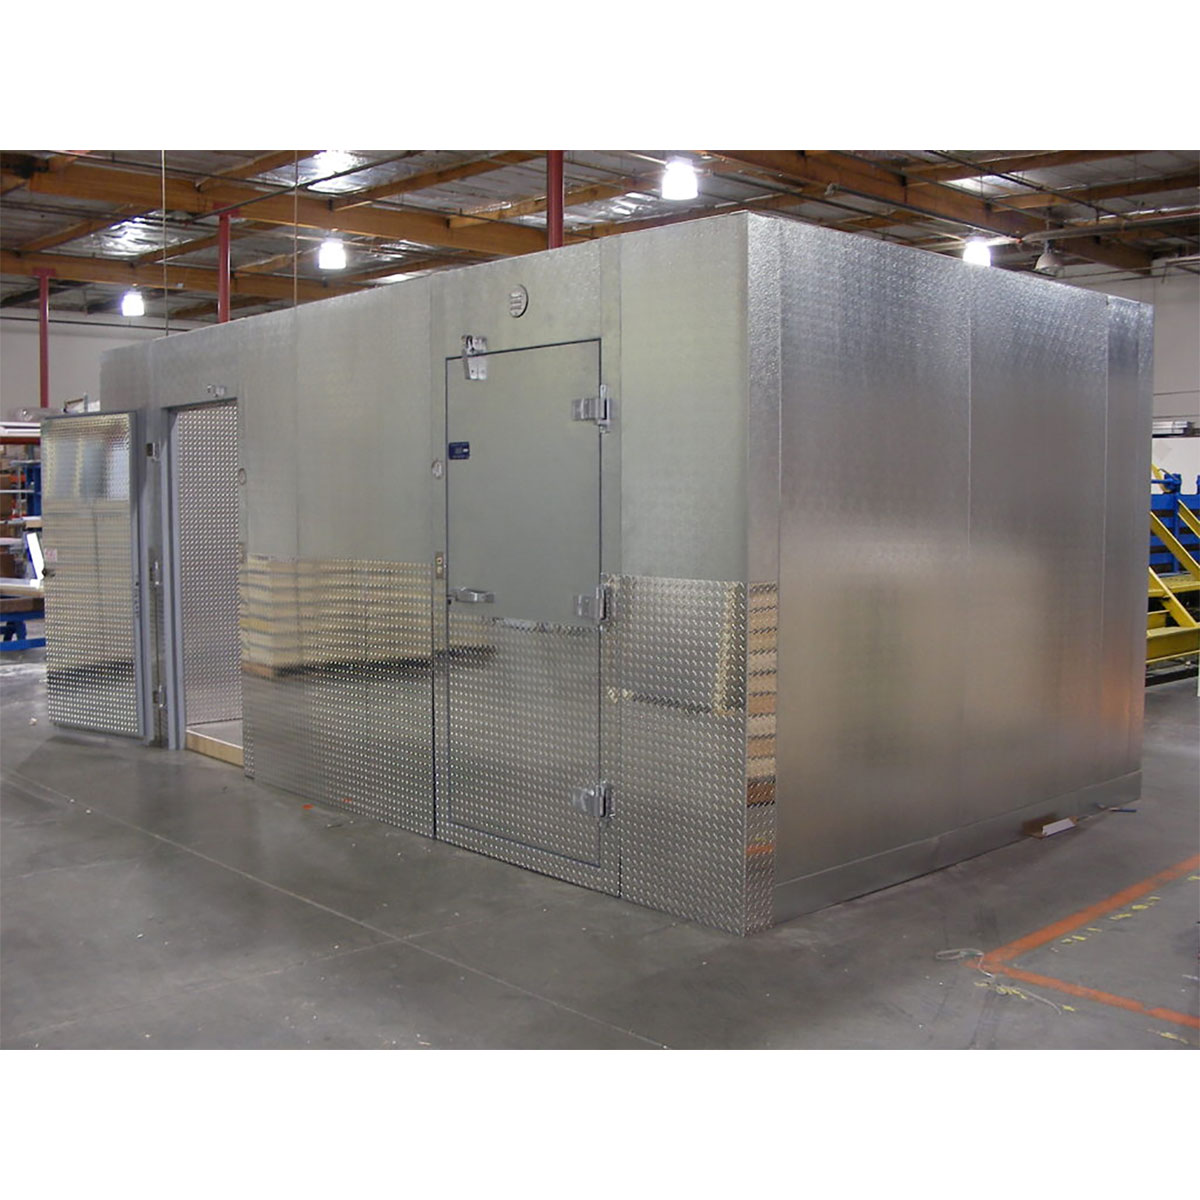 Walk-in Box with two doors and Diamond Plate Commercial Cooling Par Engineering Inc. City of Industry